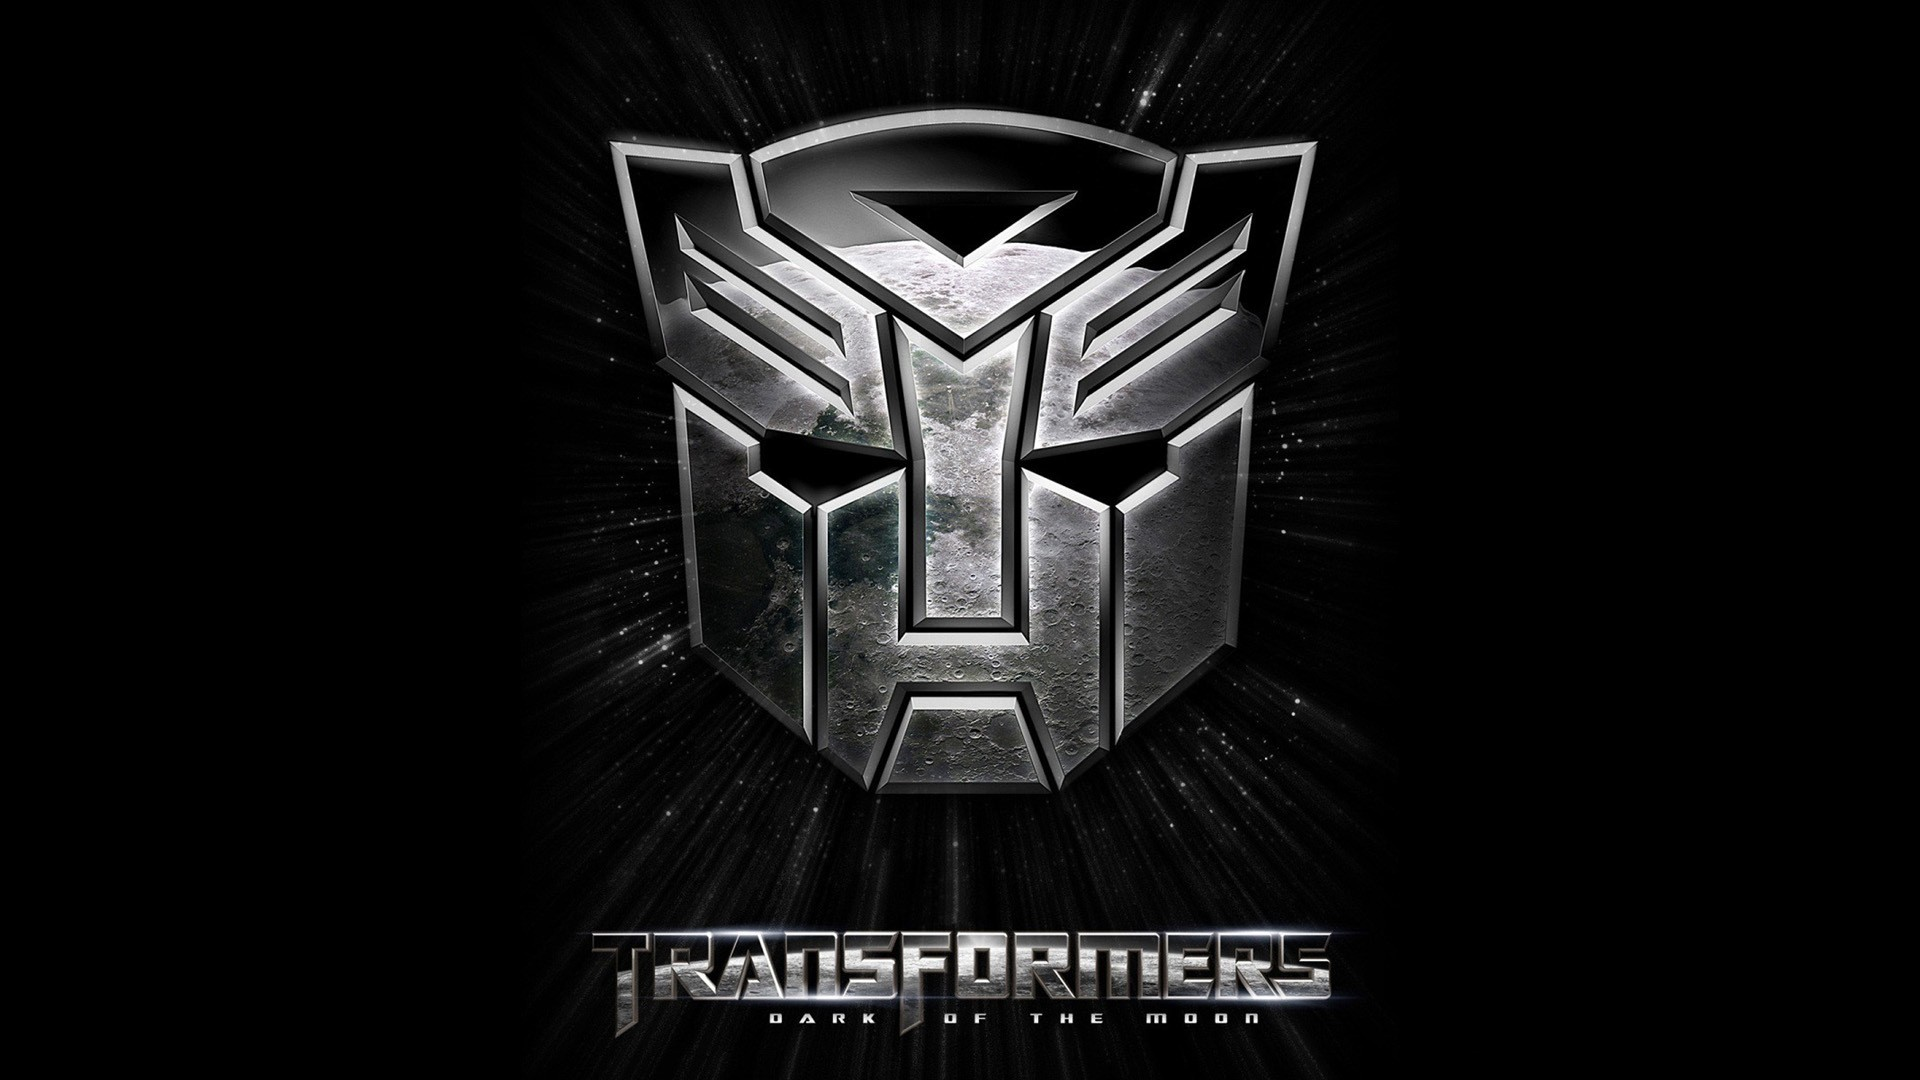 Autobots Logo Transformers Pictures HD Wallpaper of Movie 1920x1080